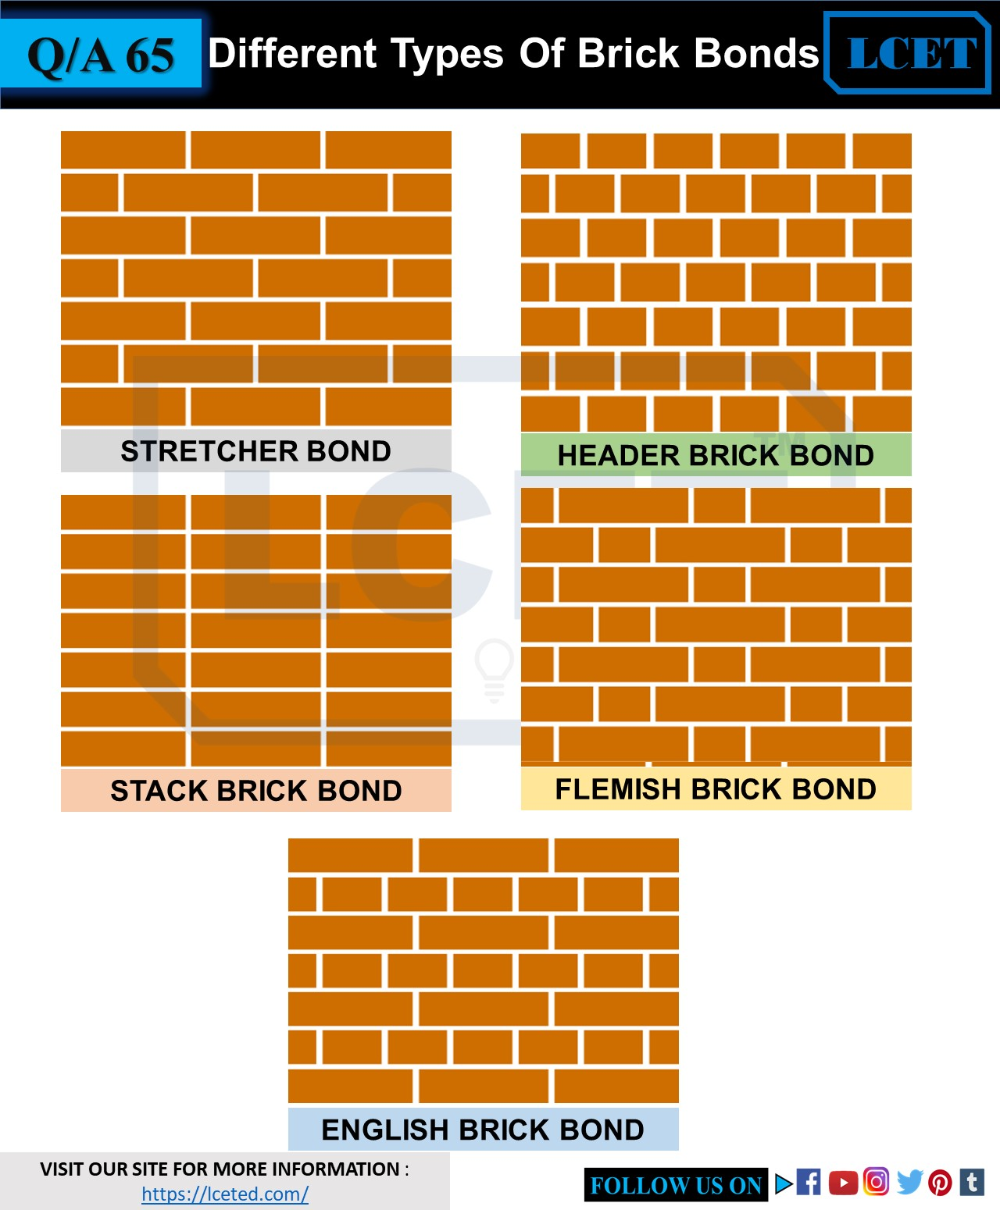 Checklist For Brick Masonry Wall Construction In 2020 Types Of